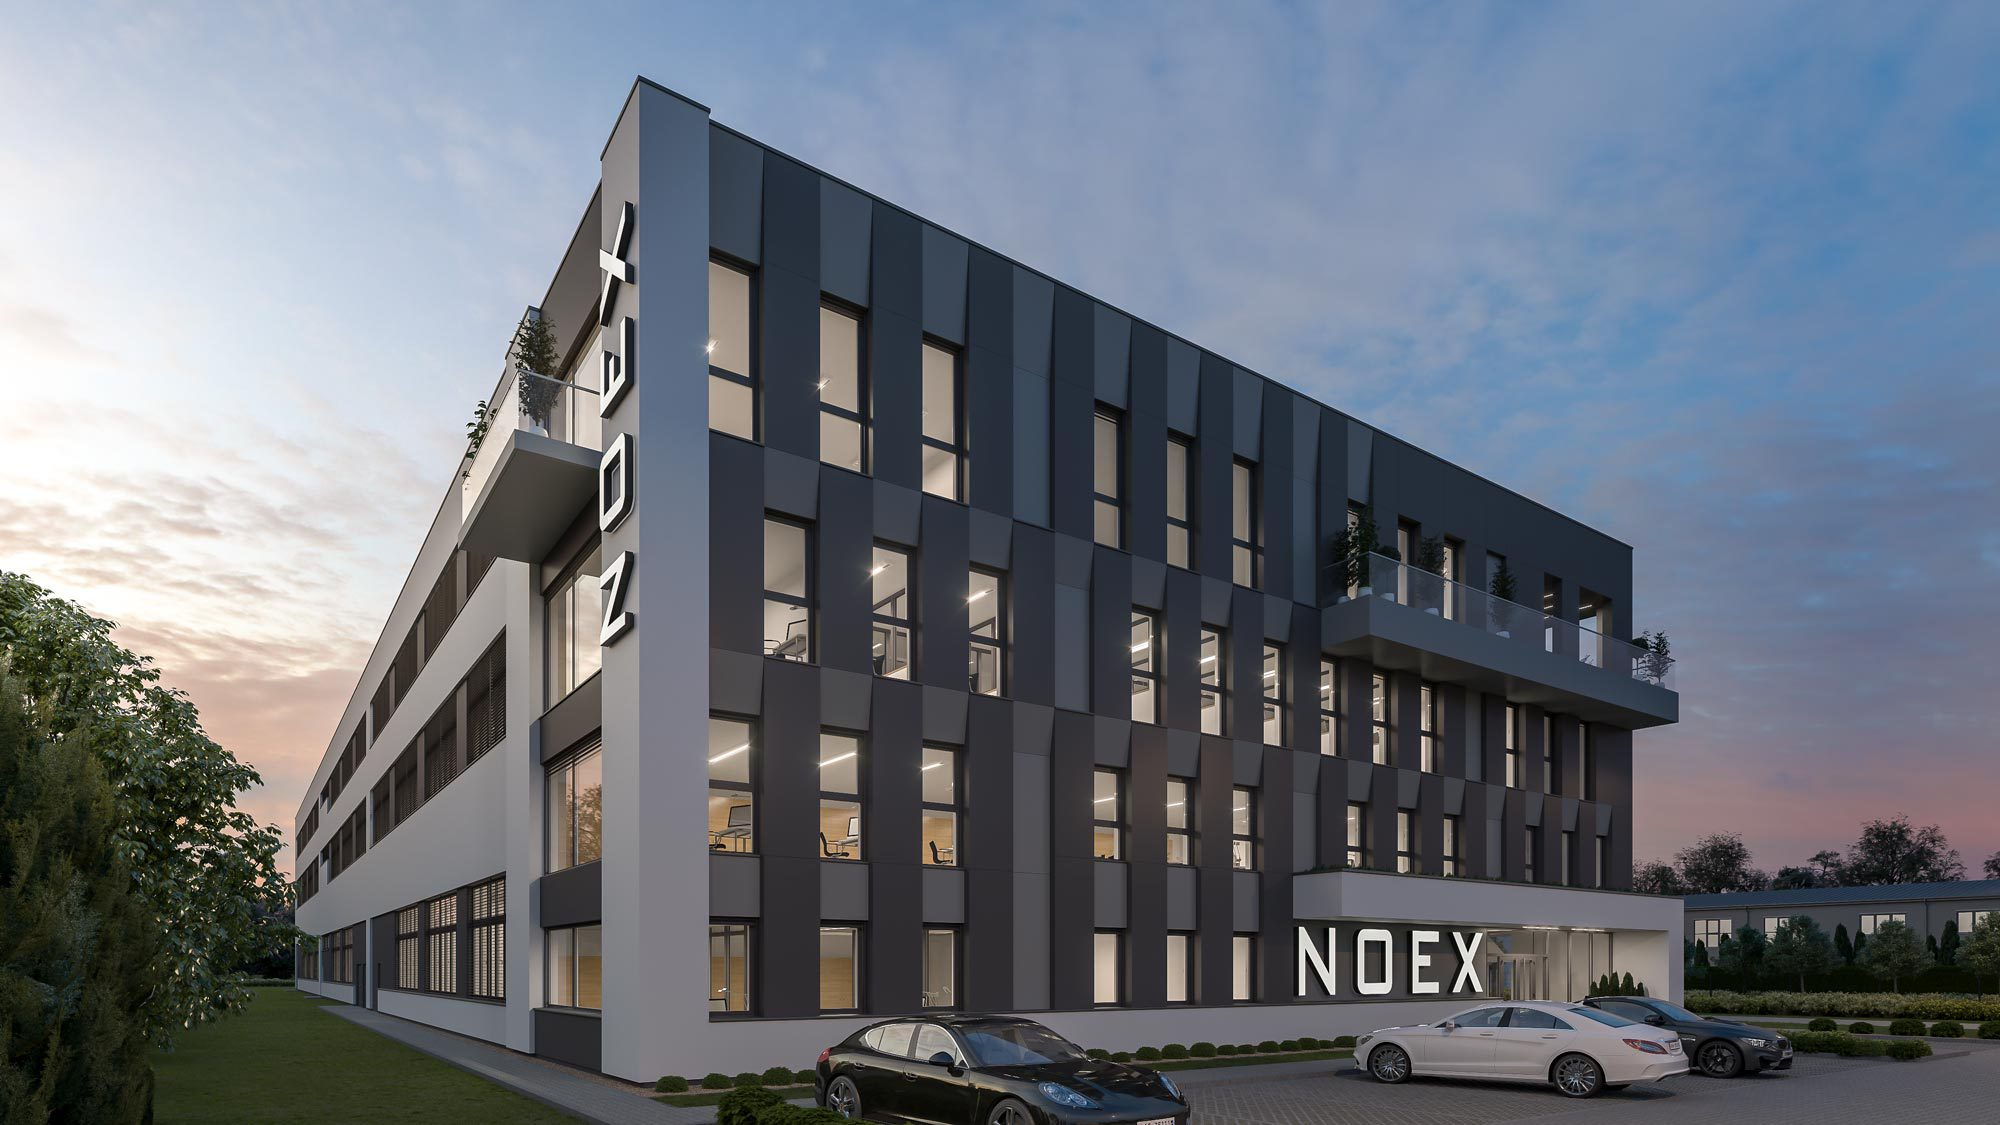 19007-NOEX-Headquarters-View-1-3D-Architectural-Visualization-Jacks-Pixels